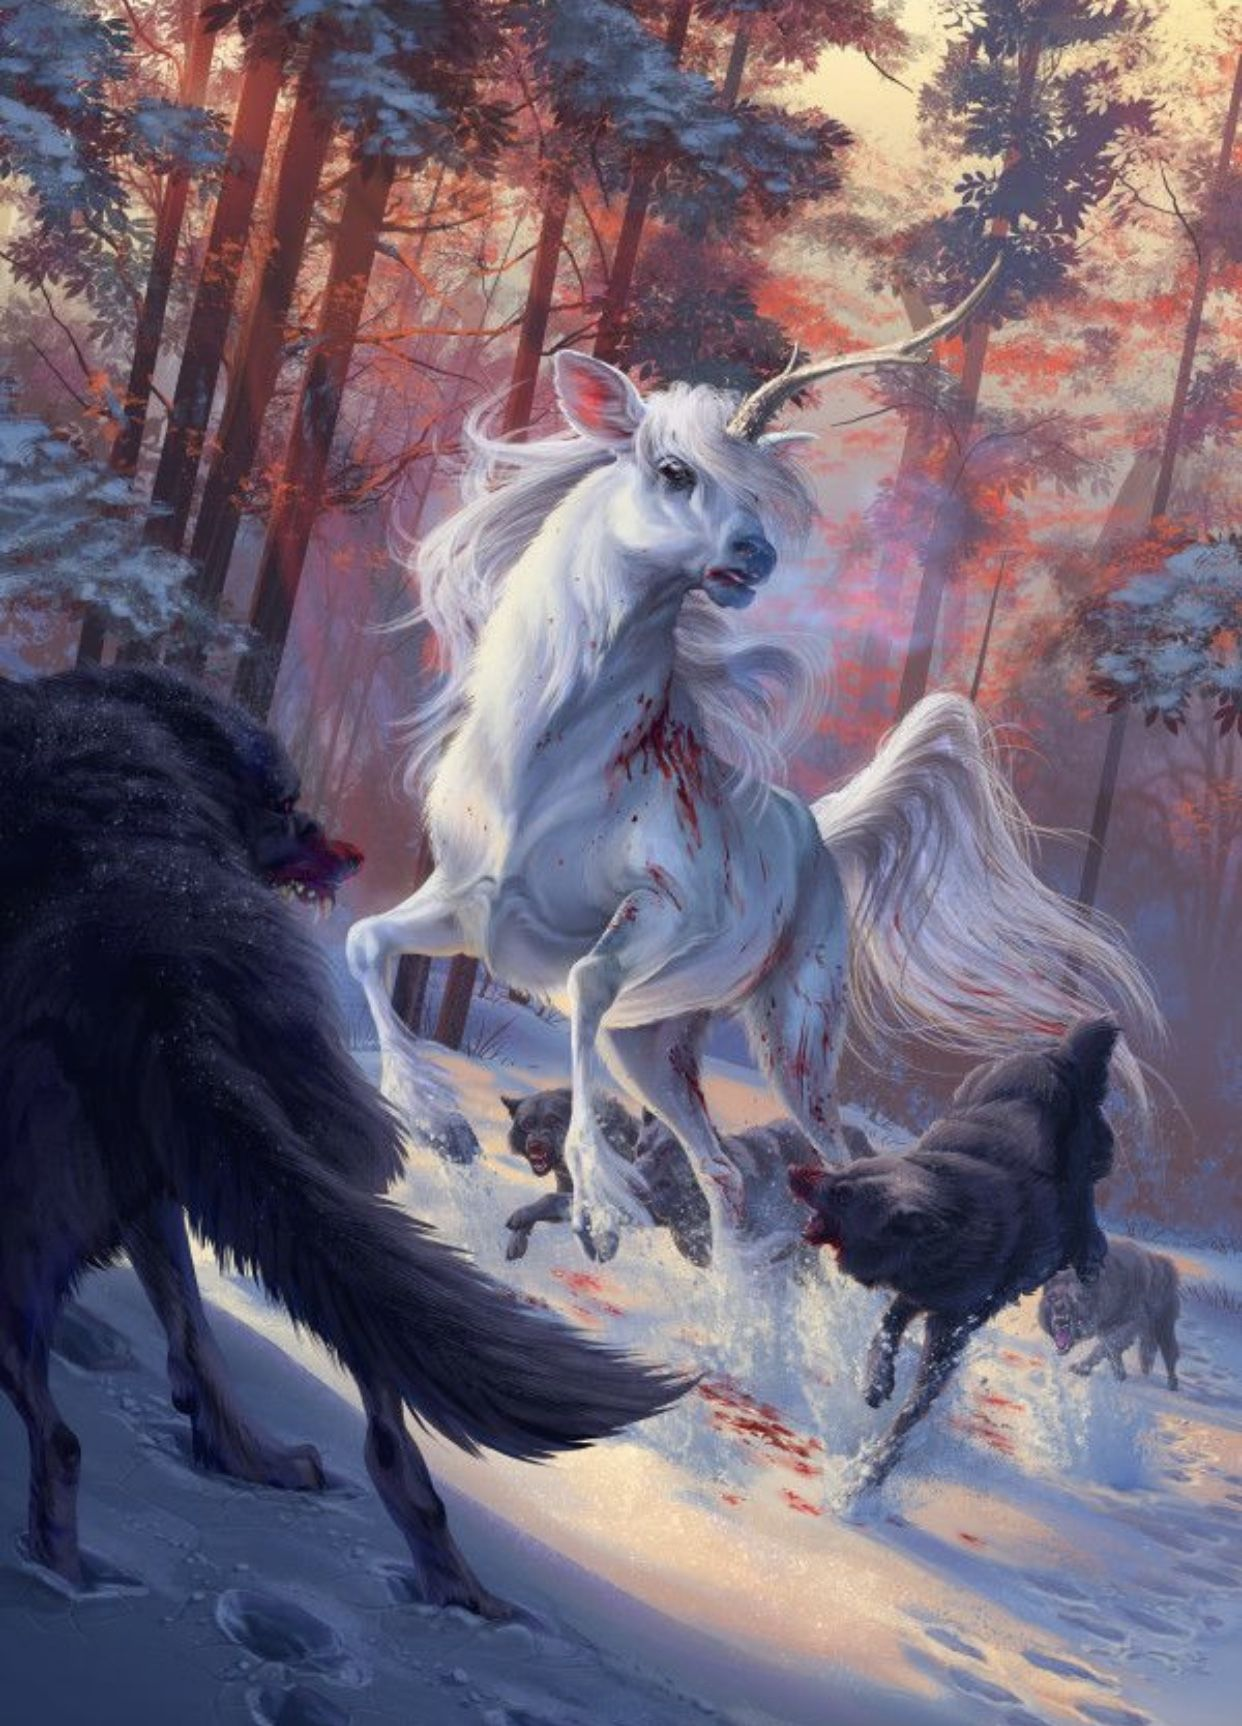 Pin by Mary Snell on Mythical creatures | Fantasy ... - photo#2